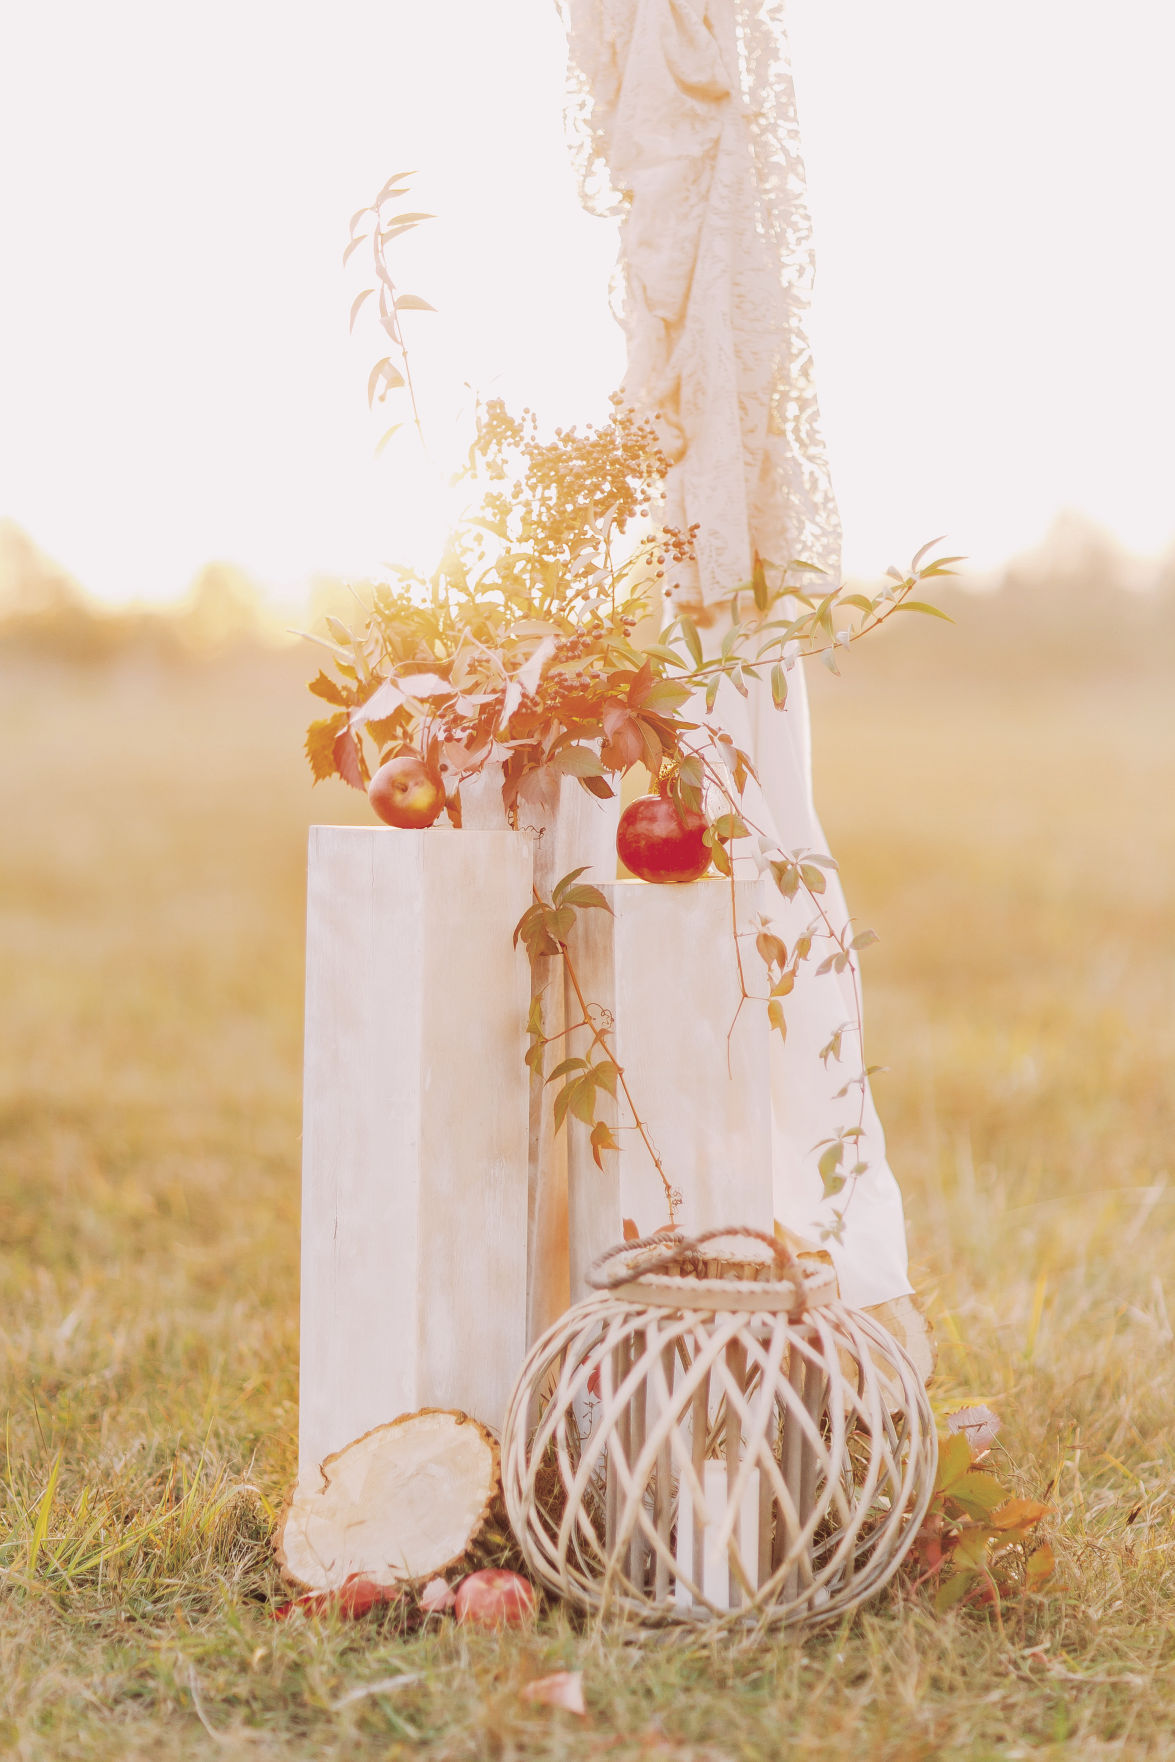 Wedding decorations with red apples on the field close up